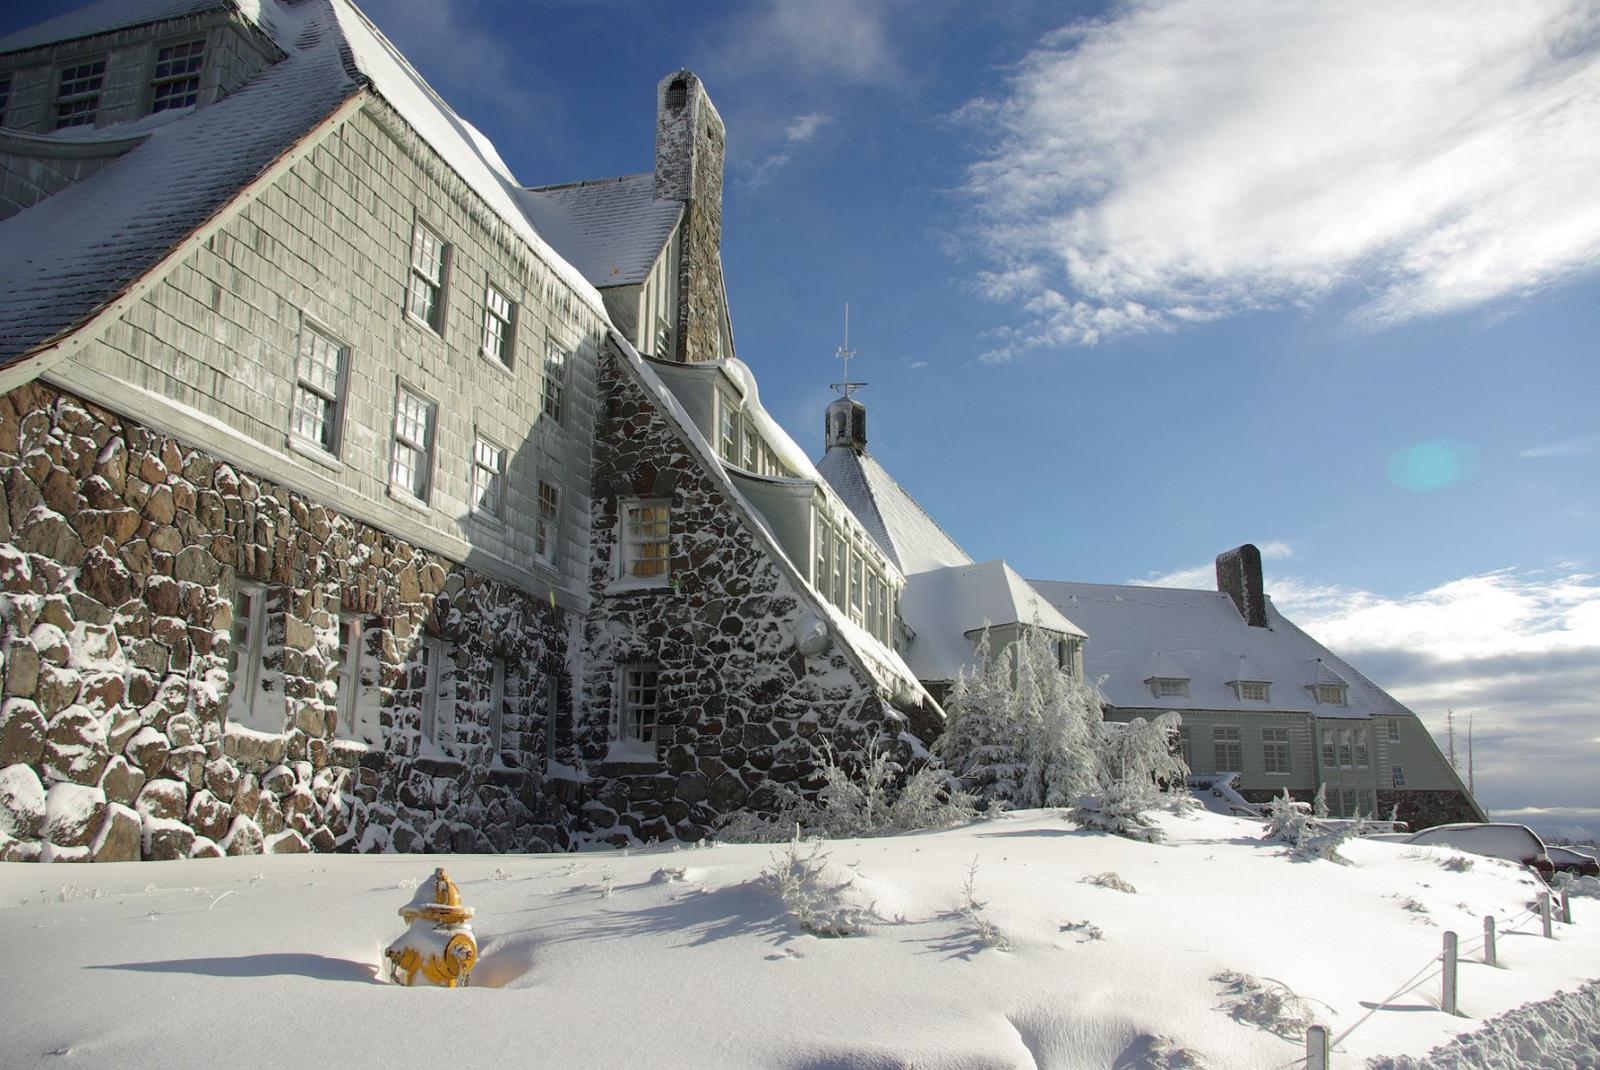 Timberline Lodge is just snowy enough for The Shining